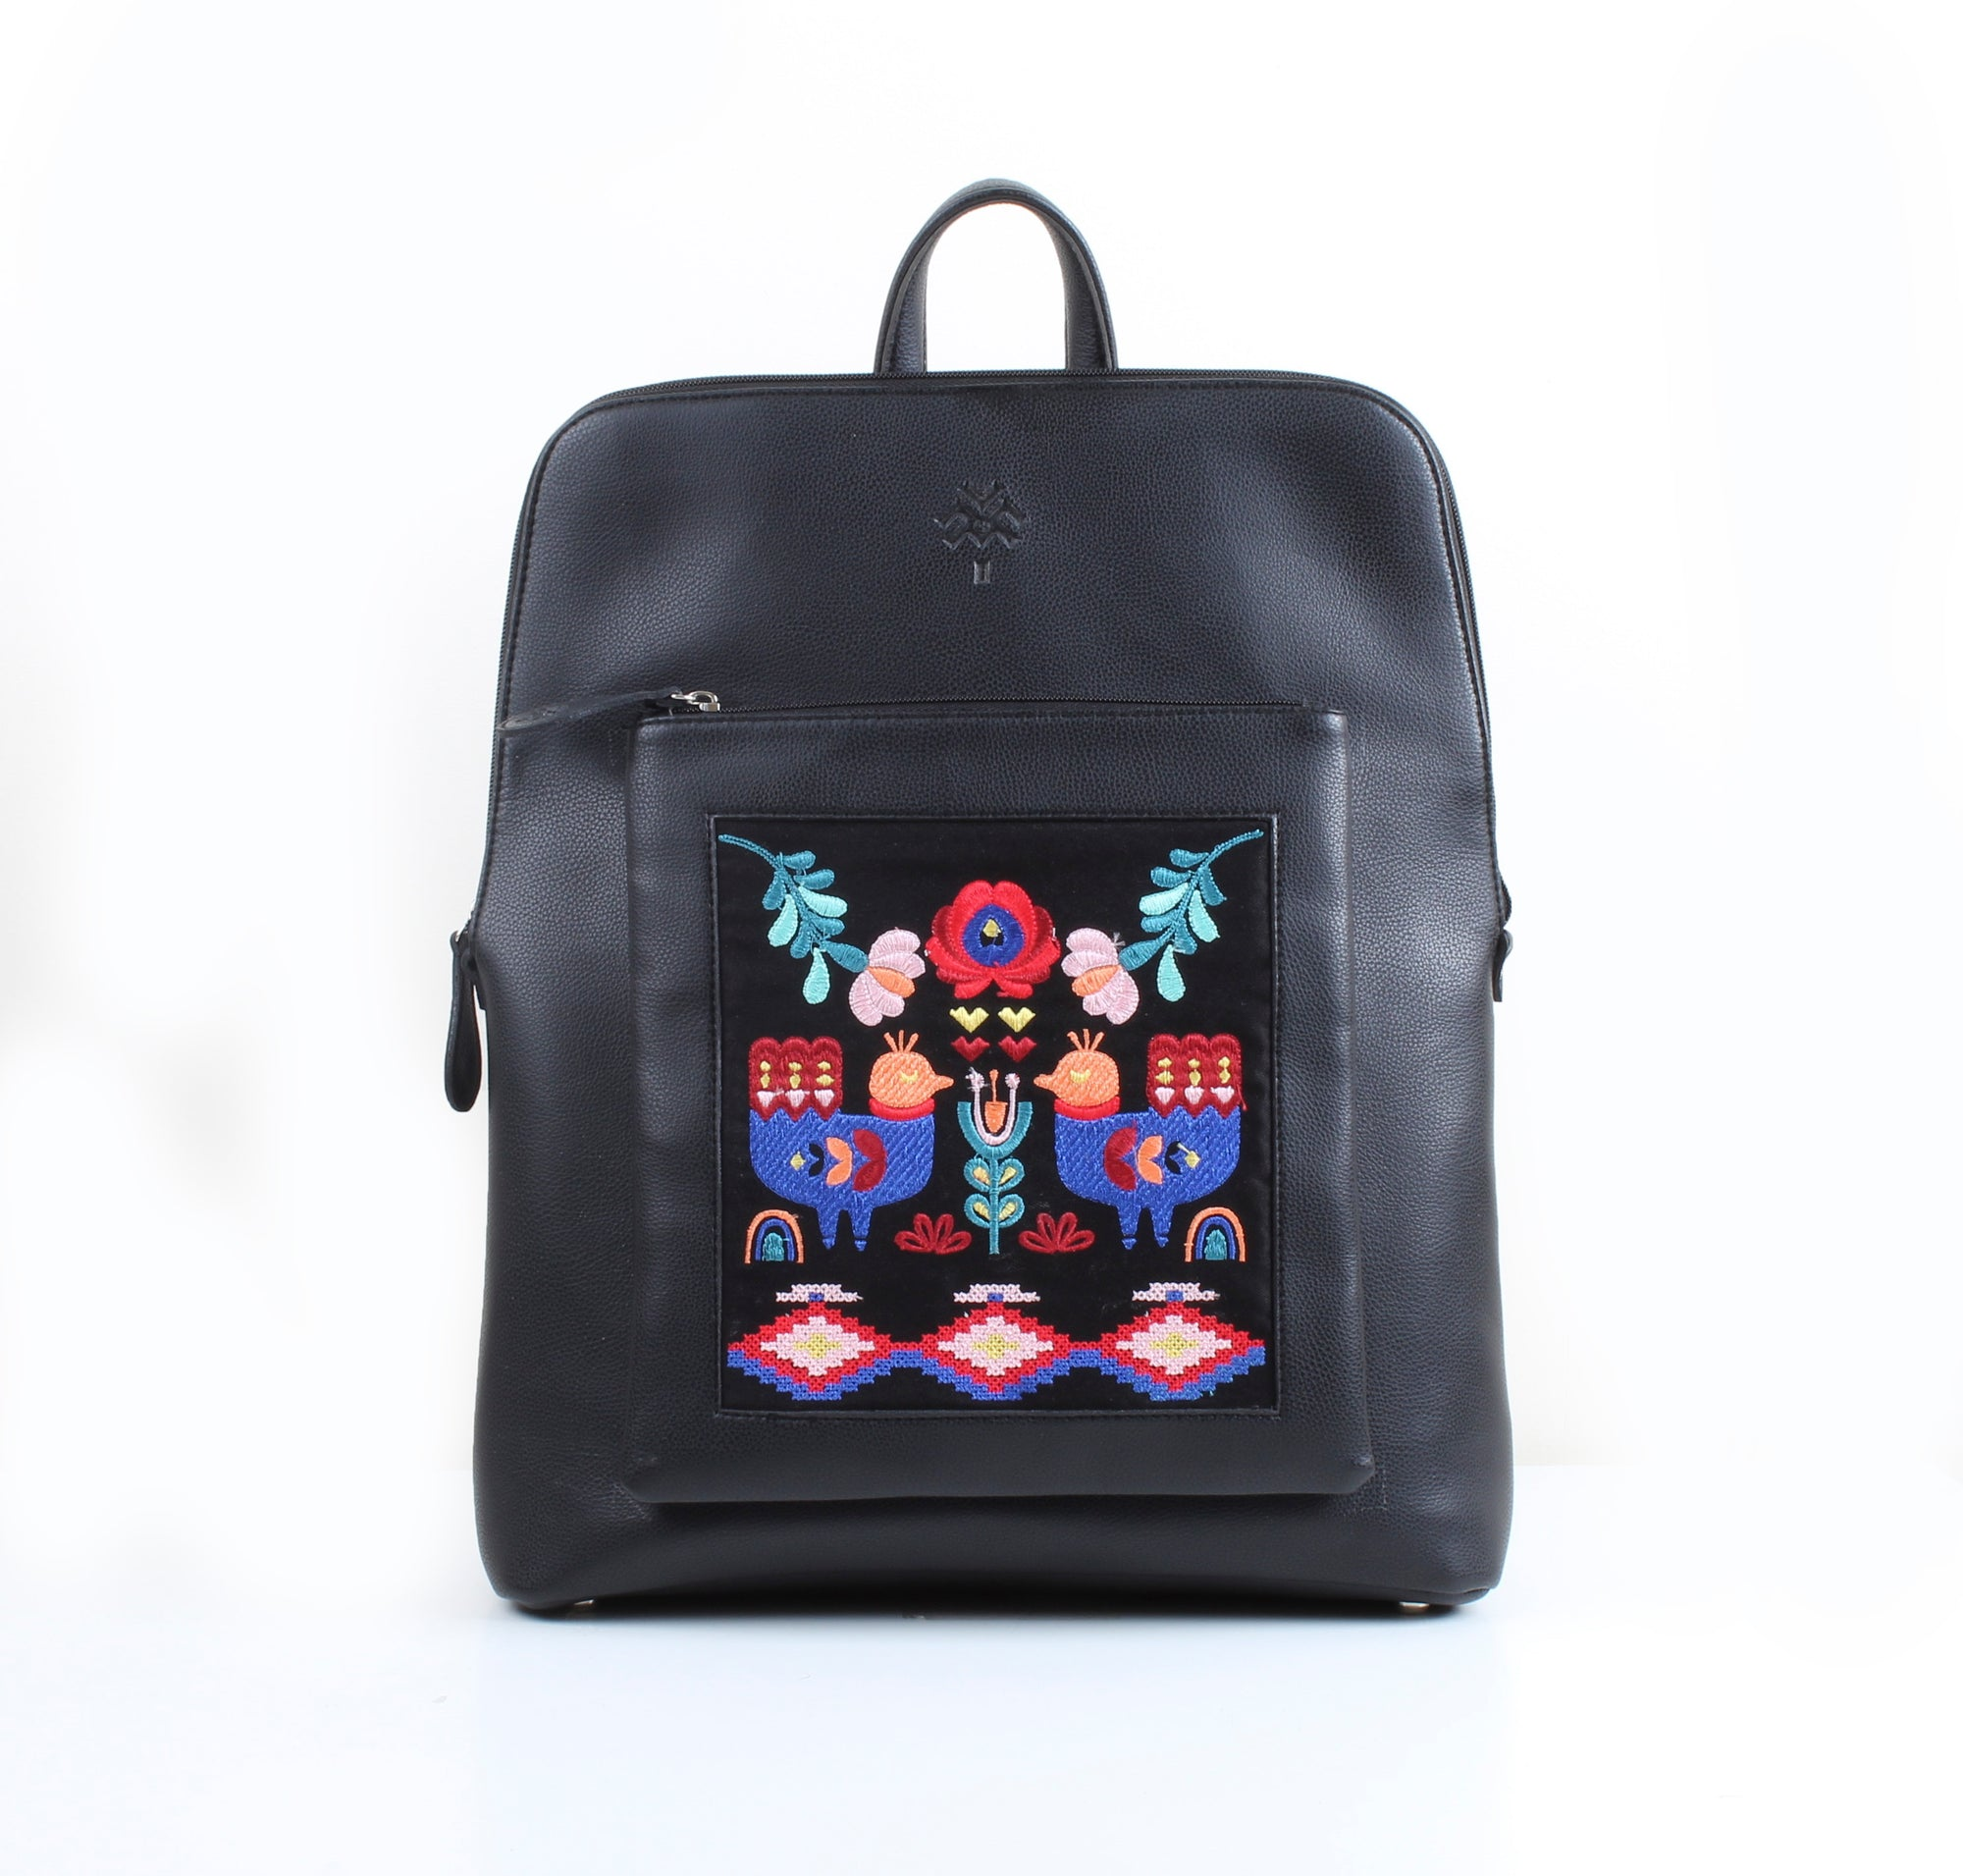 Flowered Nordic Bird x Black Curvy Laptop bag